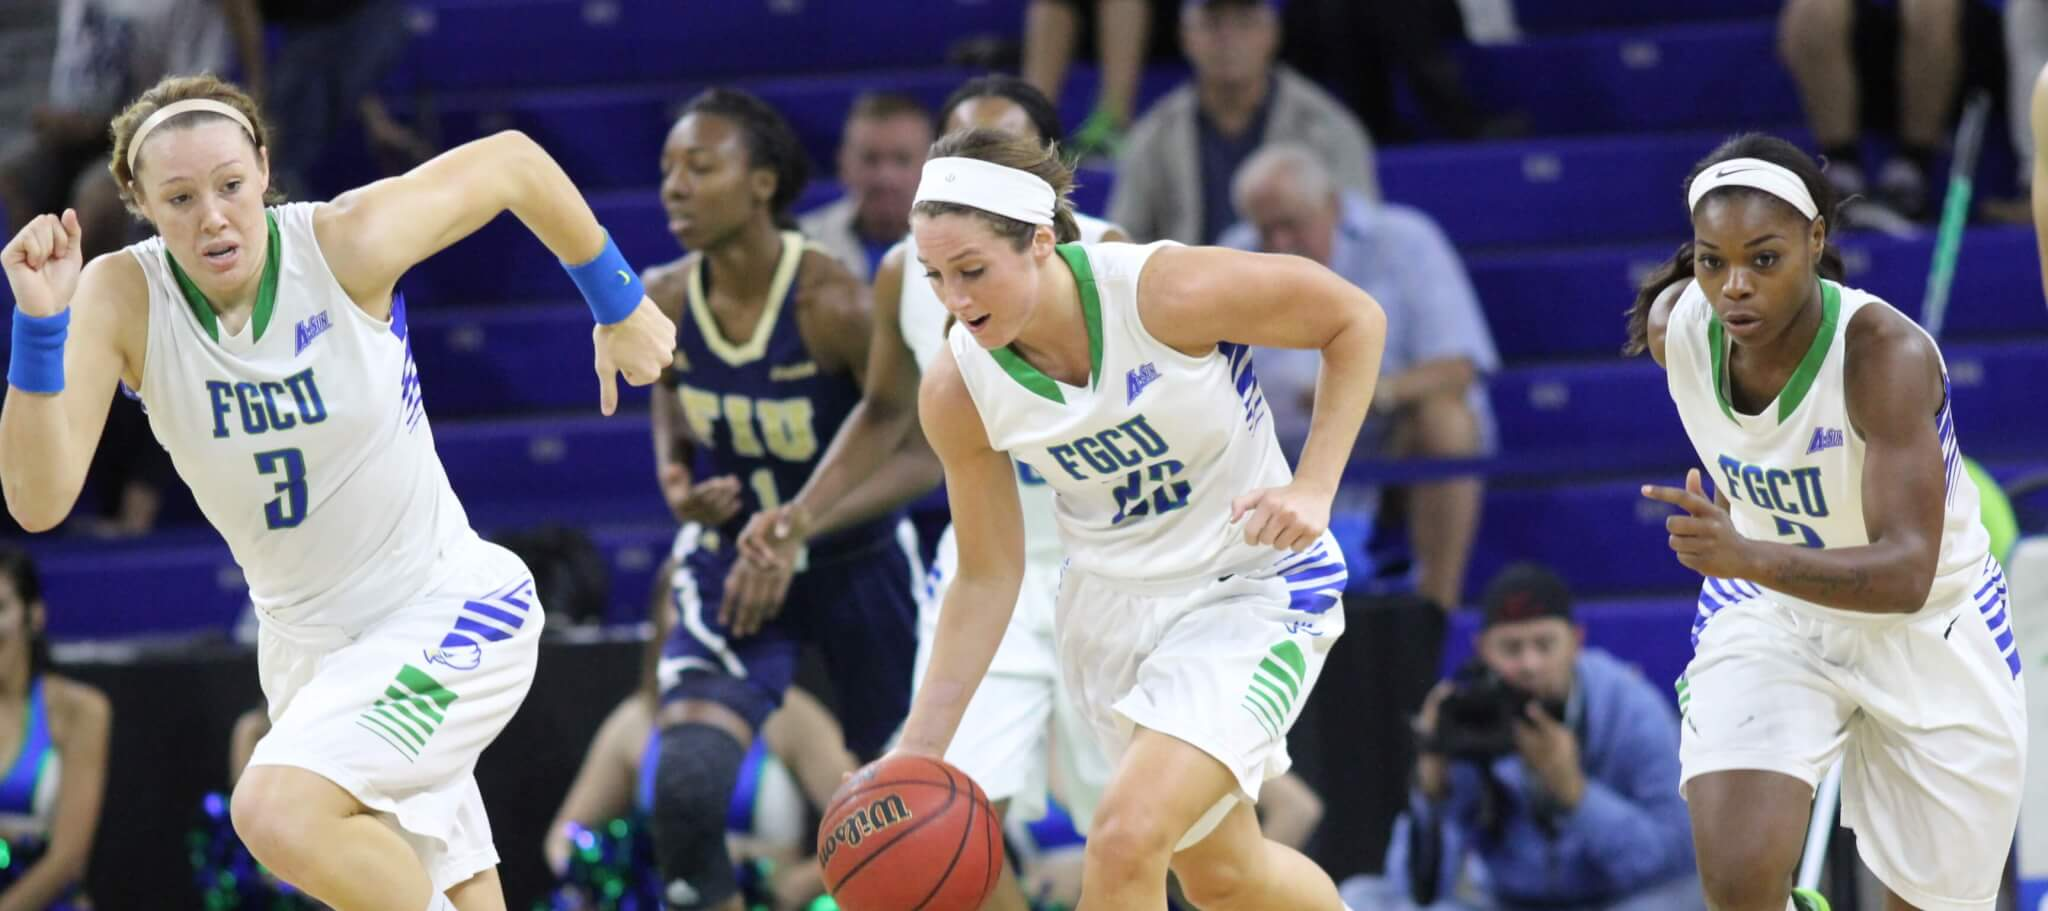 FGCU women run past North Florida with 32-point win on road